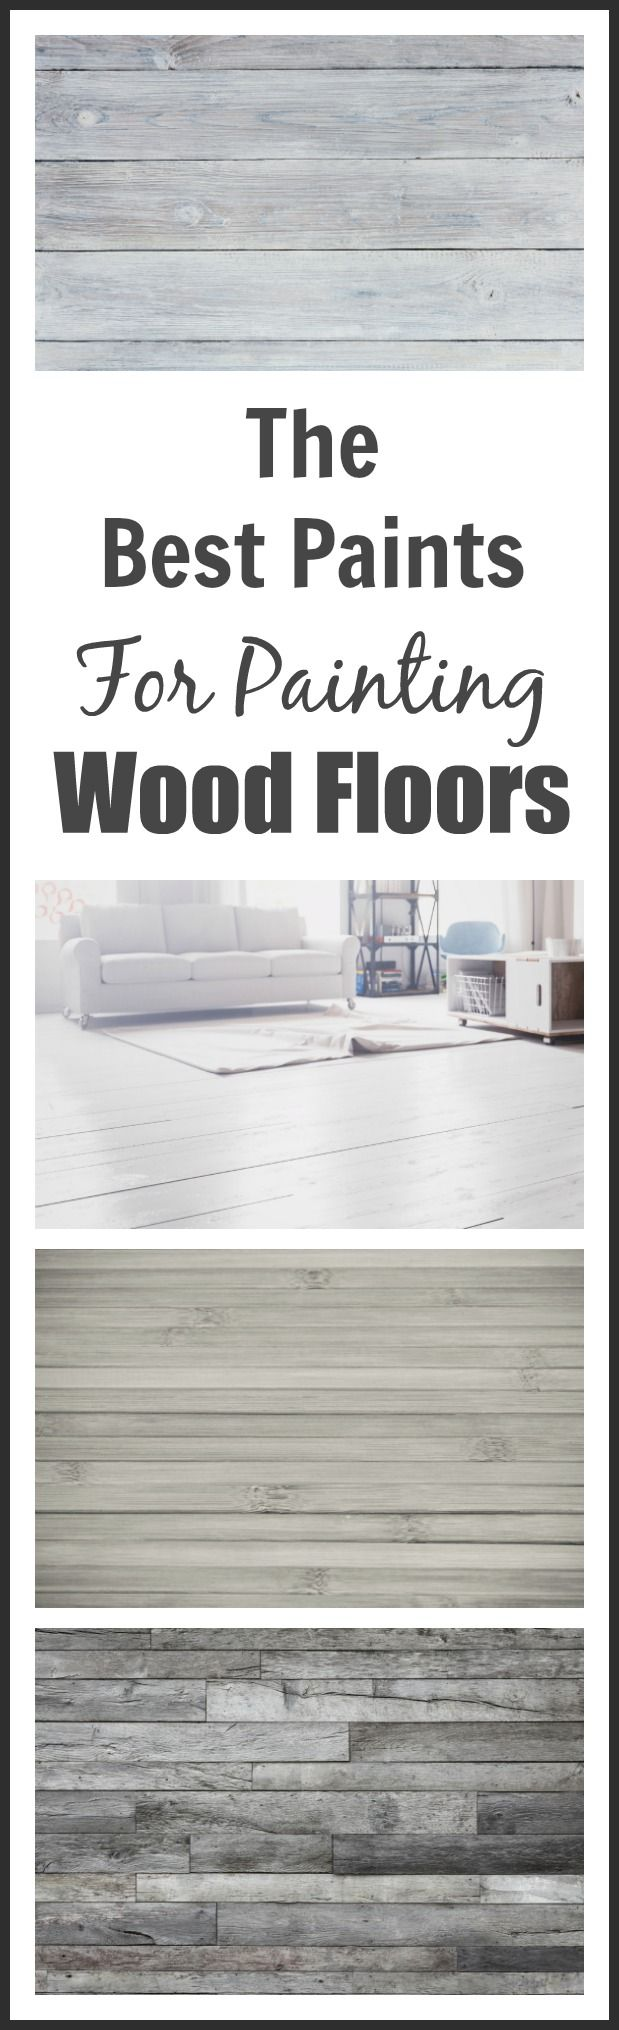 Yes, you can paint wood floors. It's a great way to give old worn out wood floors a facelift cheaply!